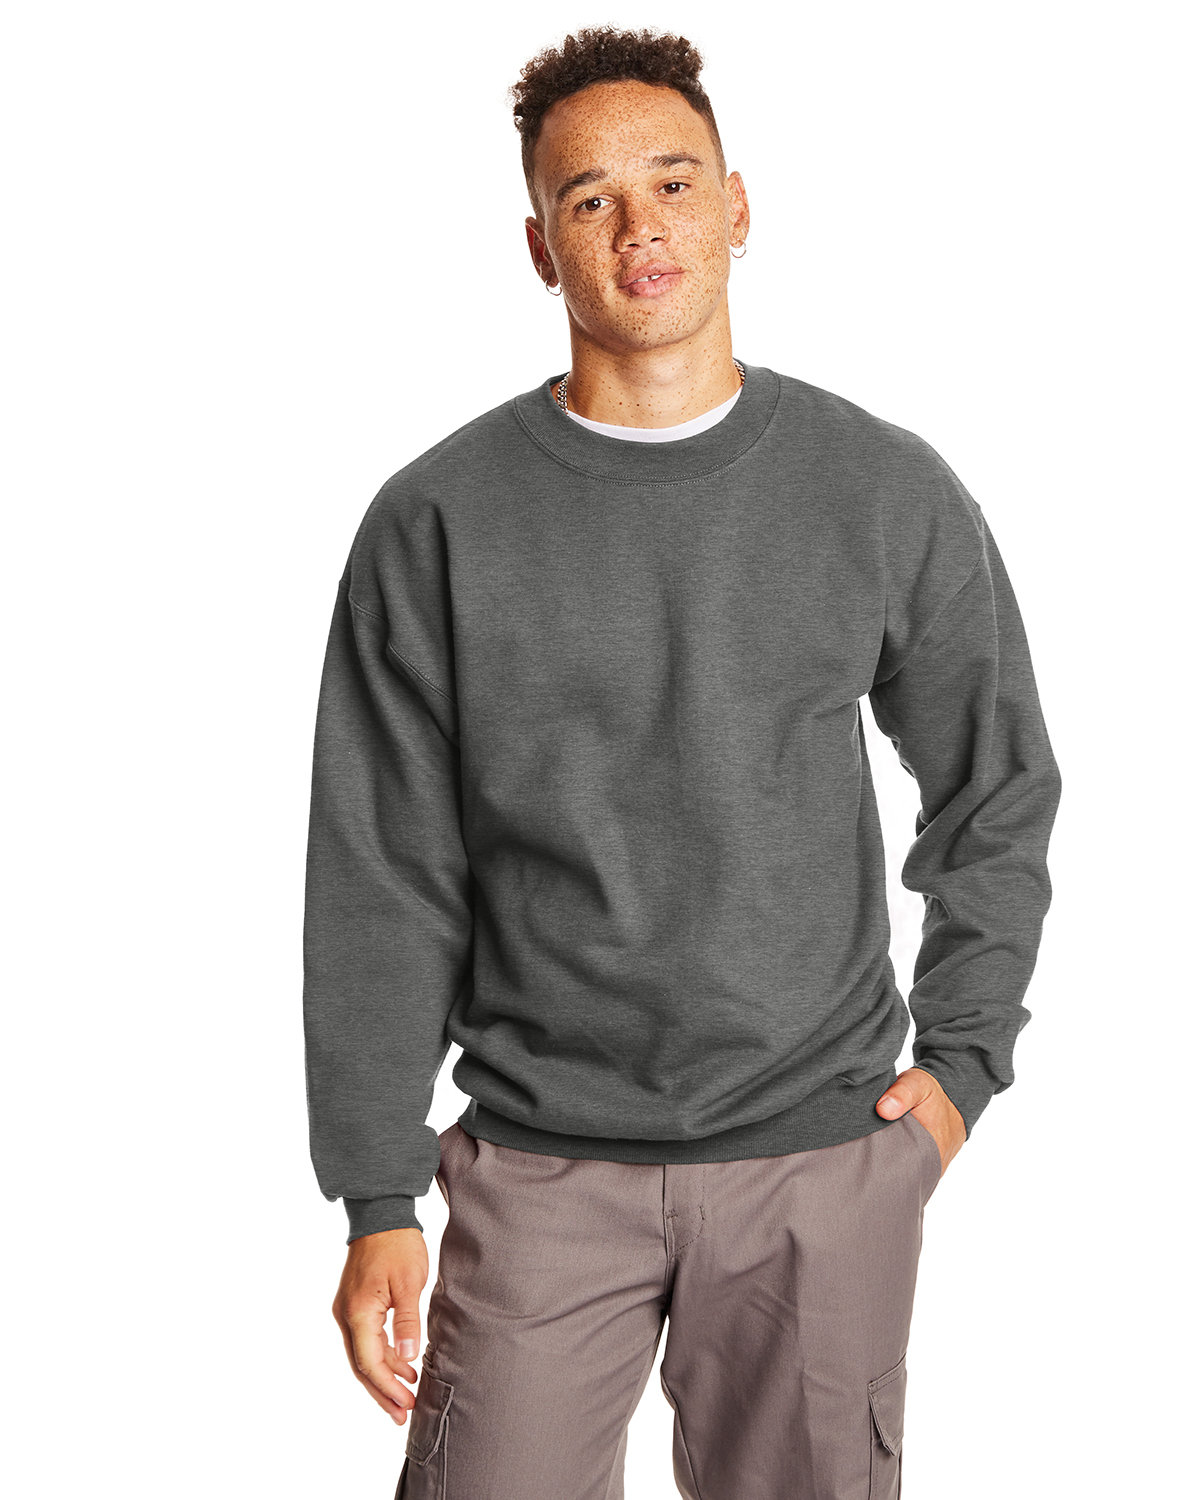 Hanes Adult Ultimate Cotton® 90/10 Fleece Crew CHARCOAL HEATHER